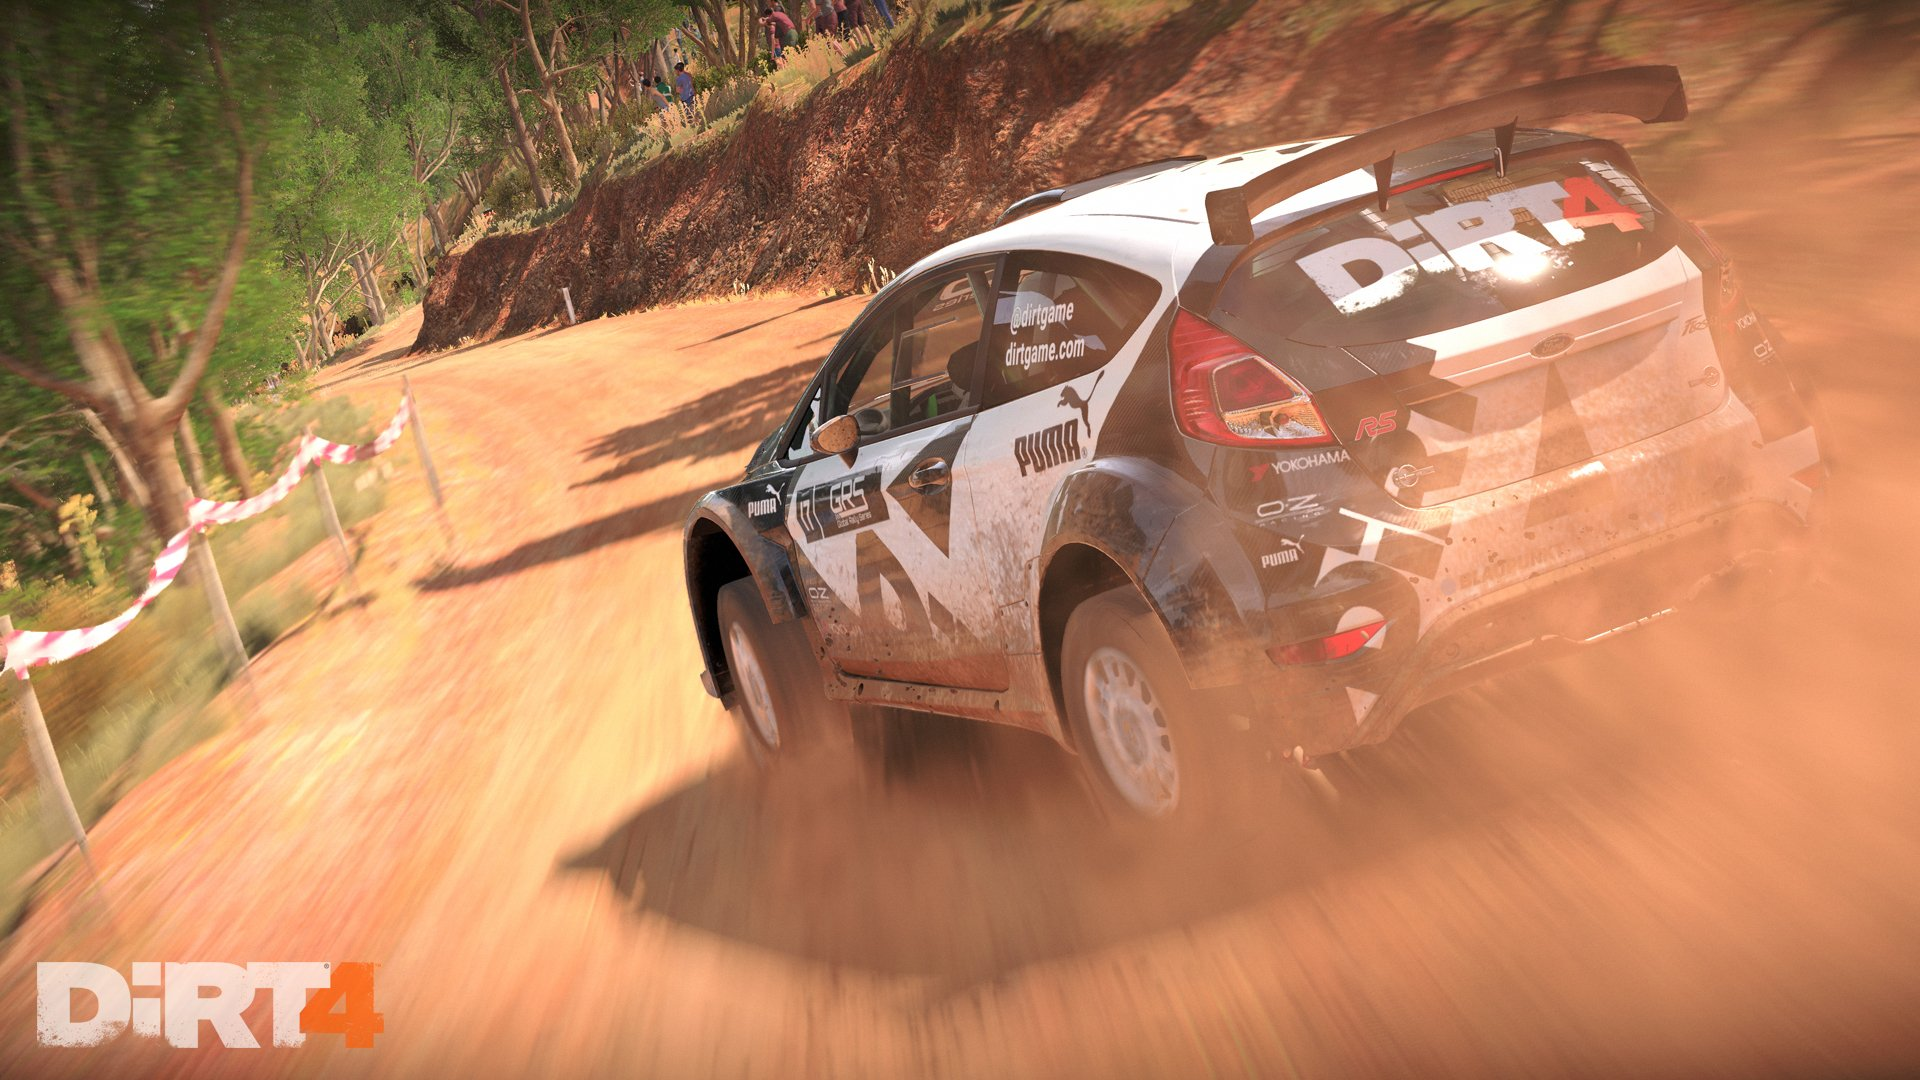 dirt 4 full hd wallpaper and background image | 1920x1080 | id:841268